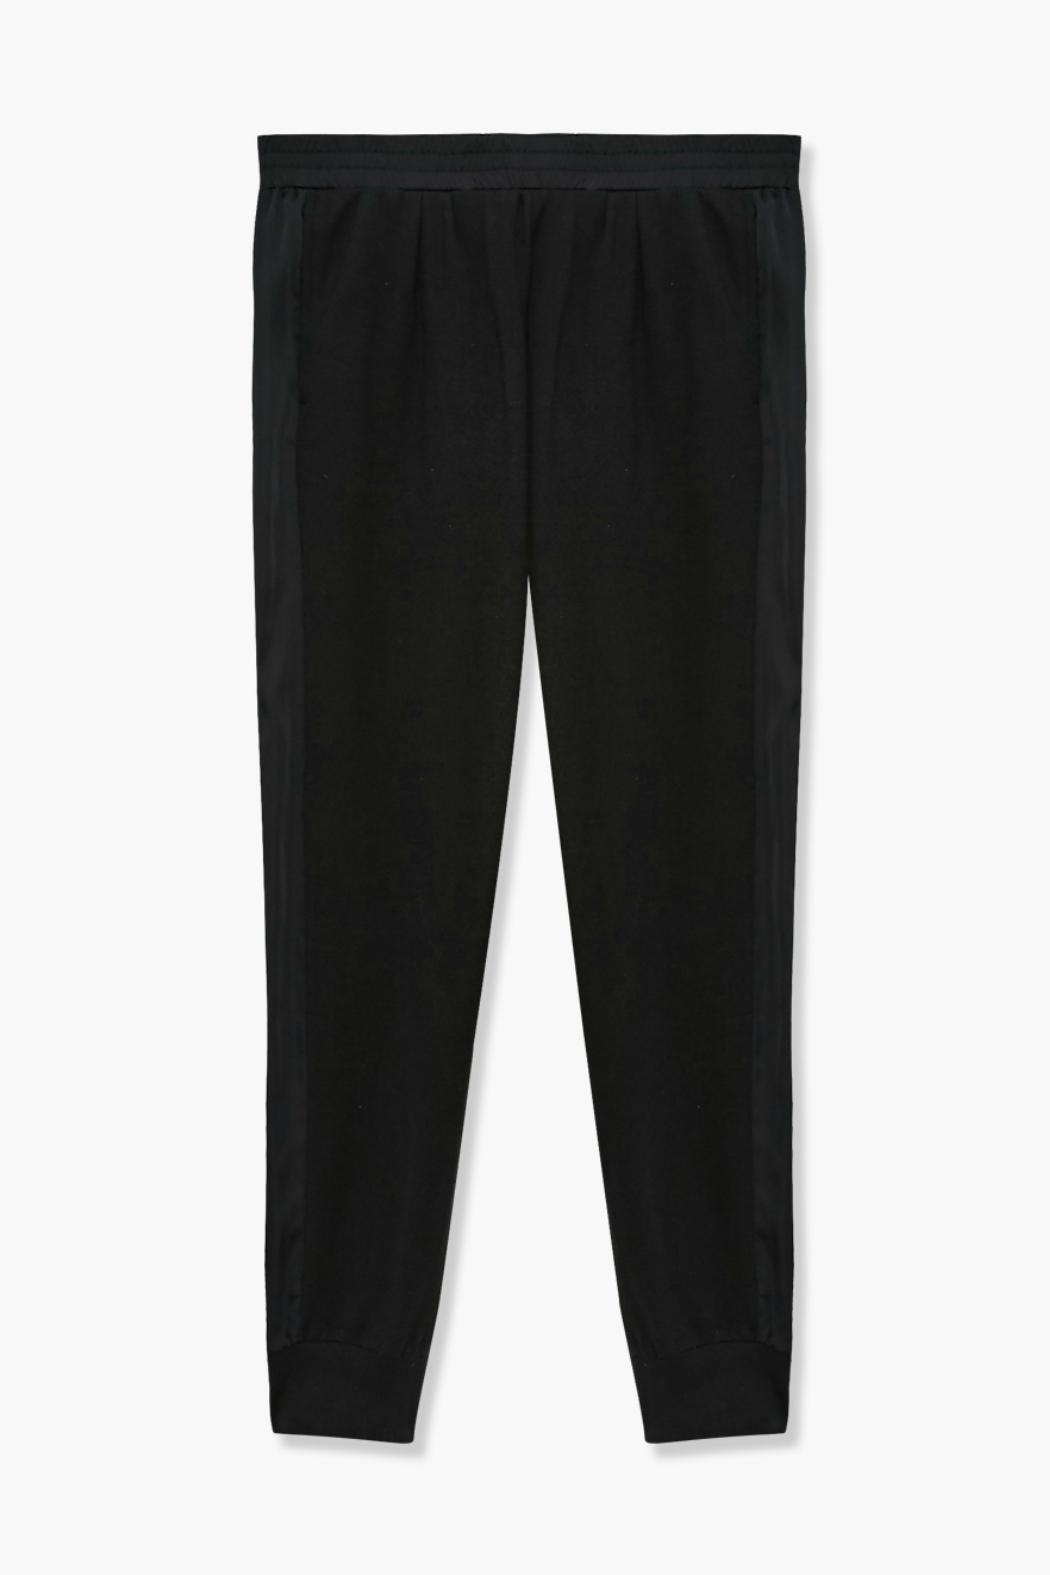 WENHUA DUVERGÉ Organic Cotton Pants from Paris — Shoptiques